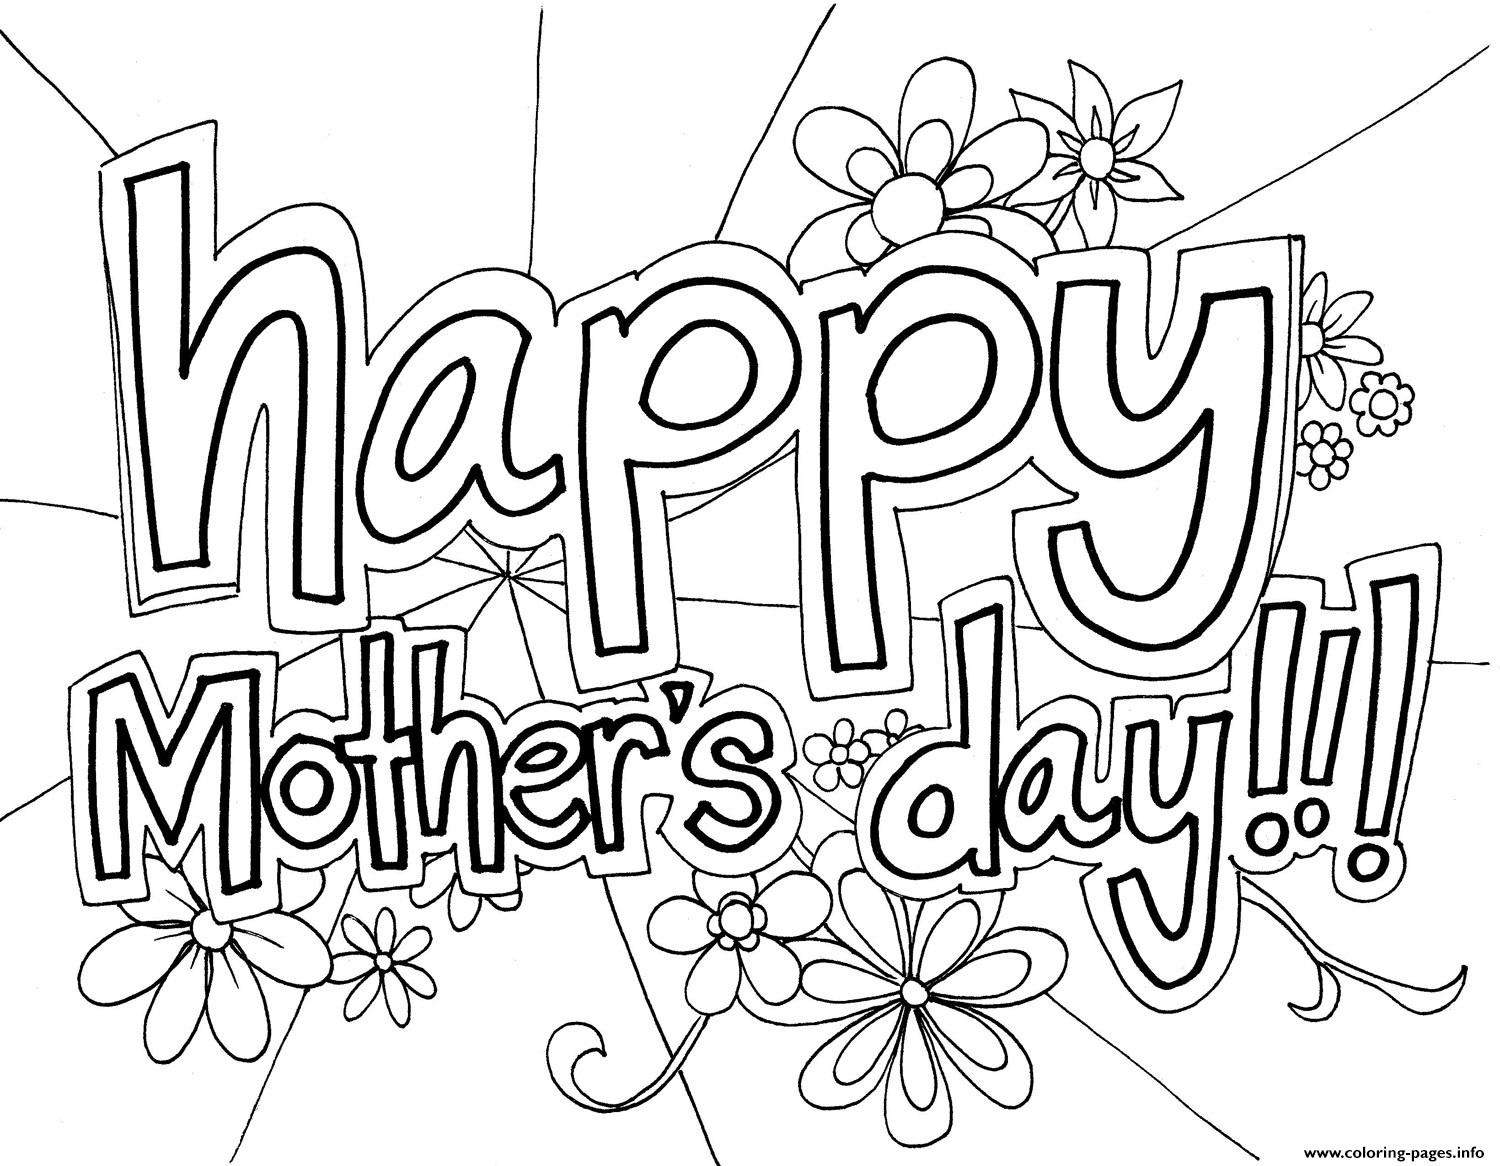 Happy Mothers Day Coloring Pages Free Happy Mothers Day Coloring - Free Printable Mothers Day Coloring Sheets